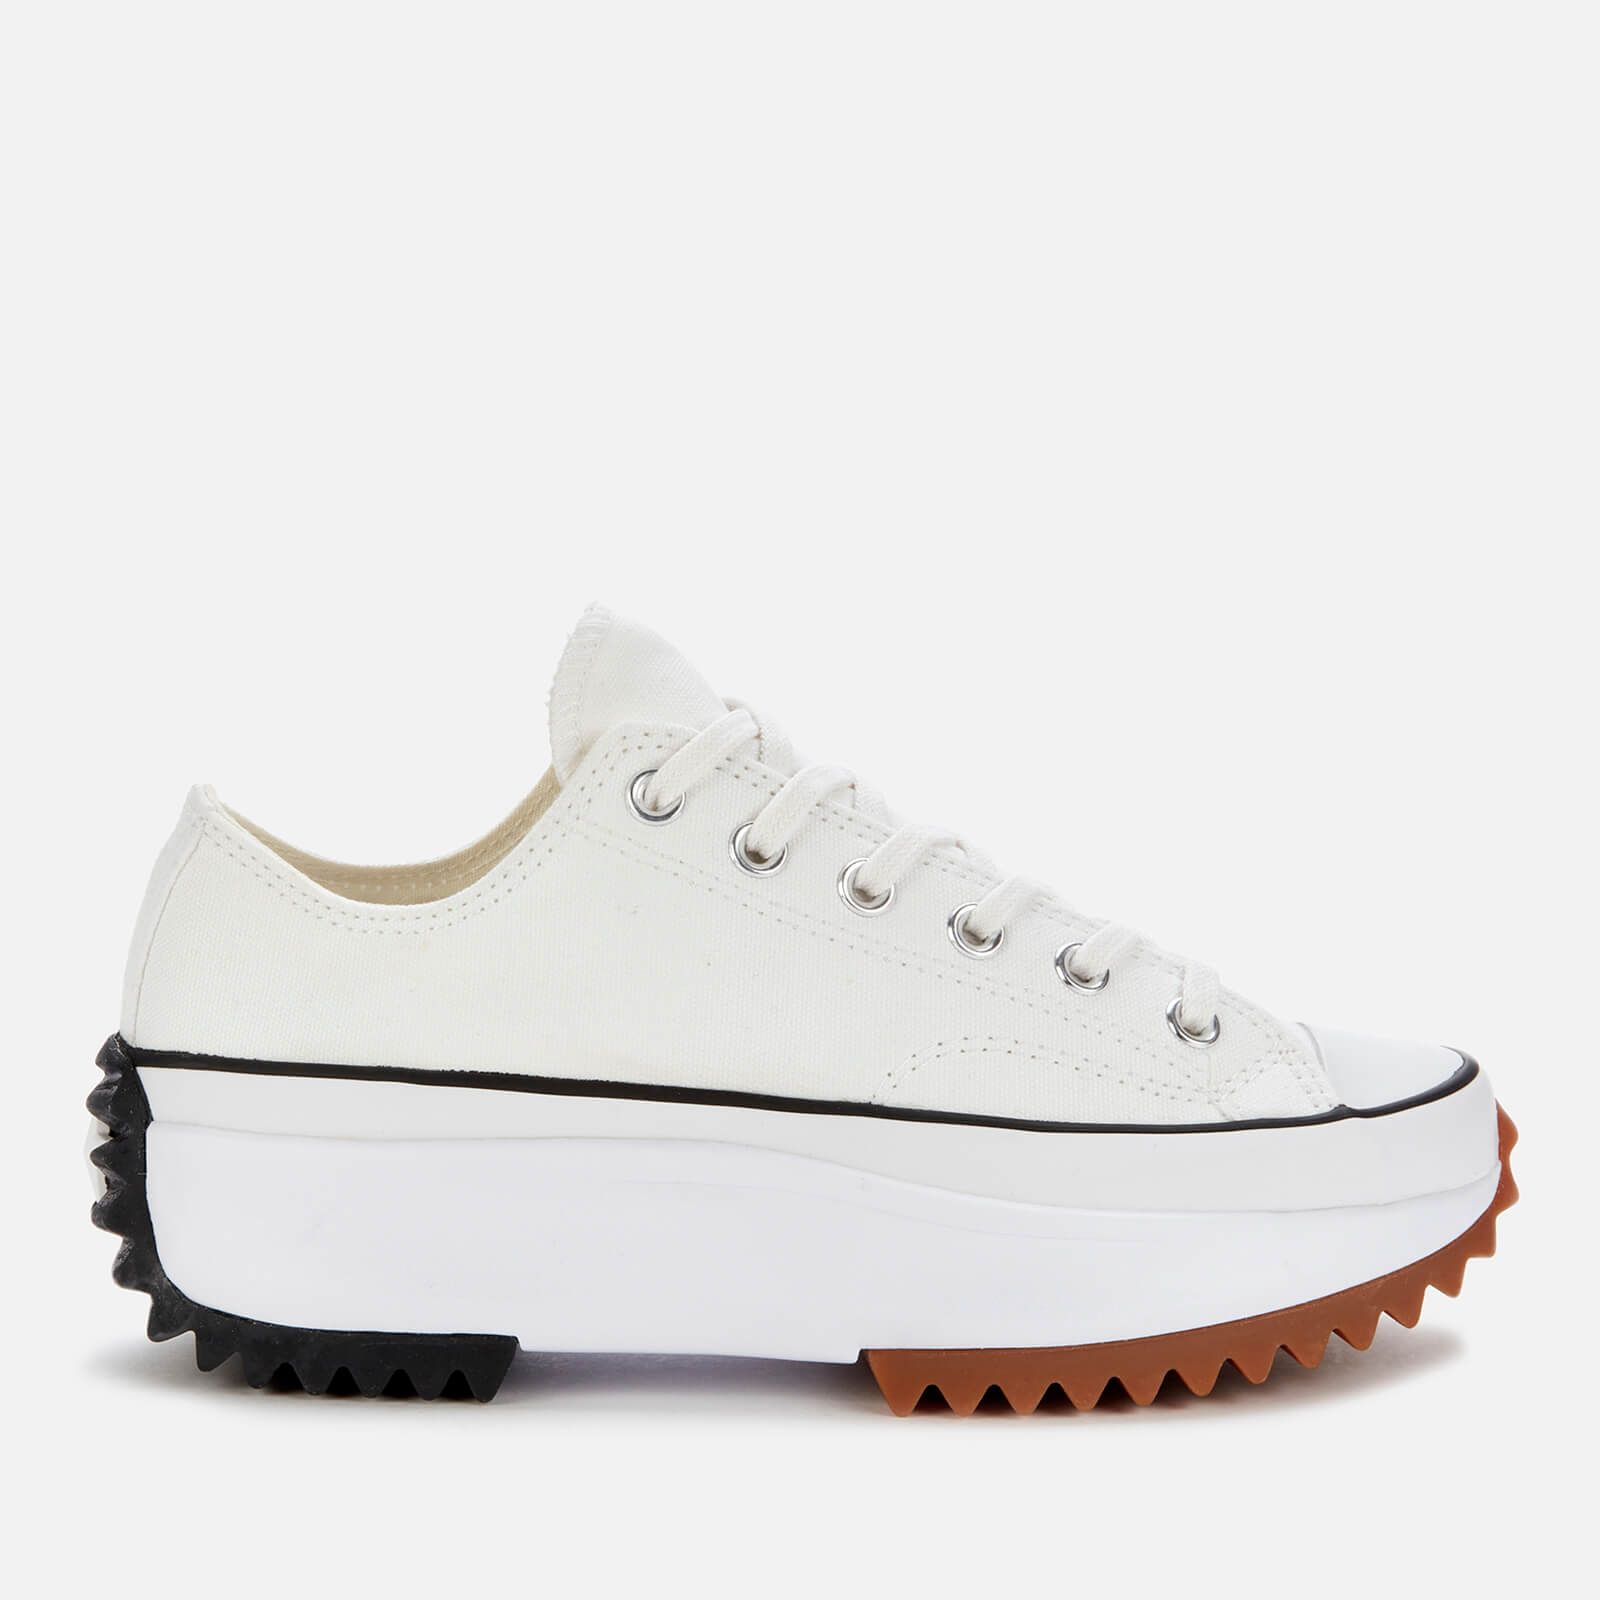 Converse Run Star Hike Ox Trainers - White/Black/Gum - UK 8 from Converse